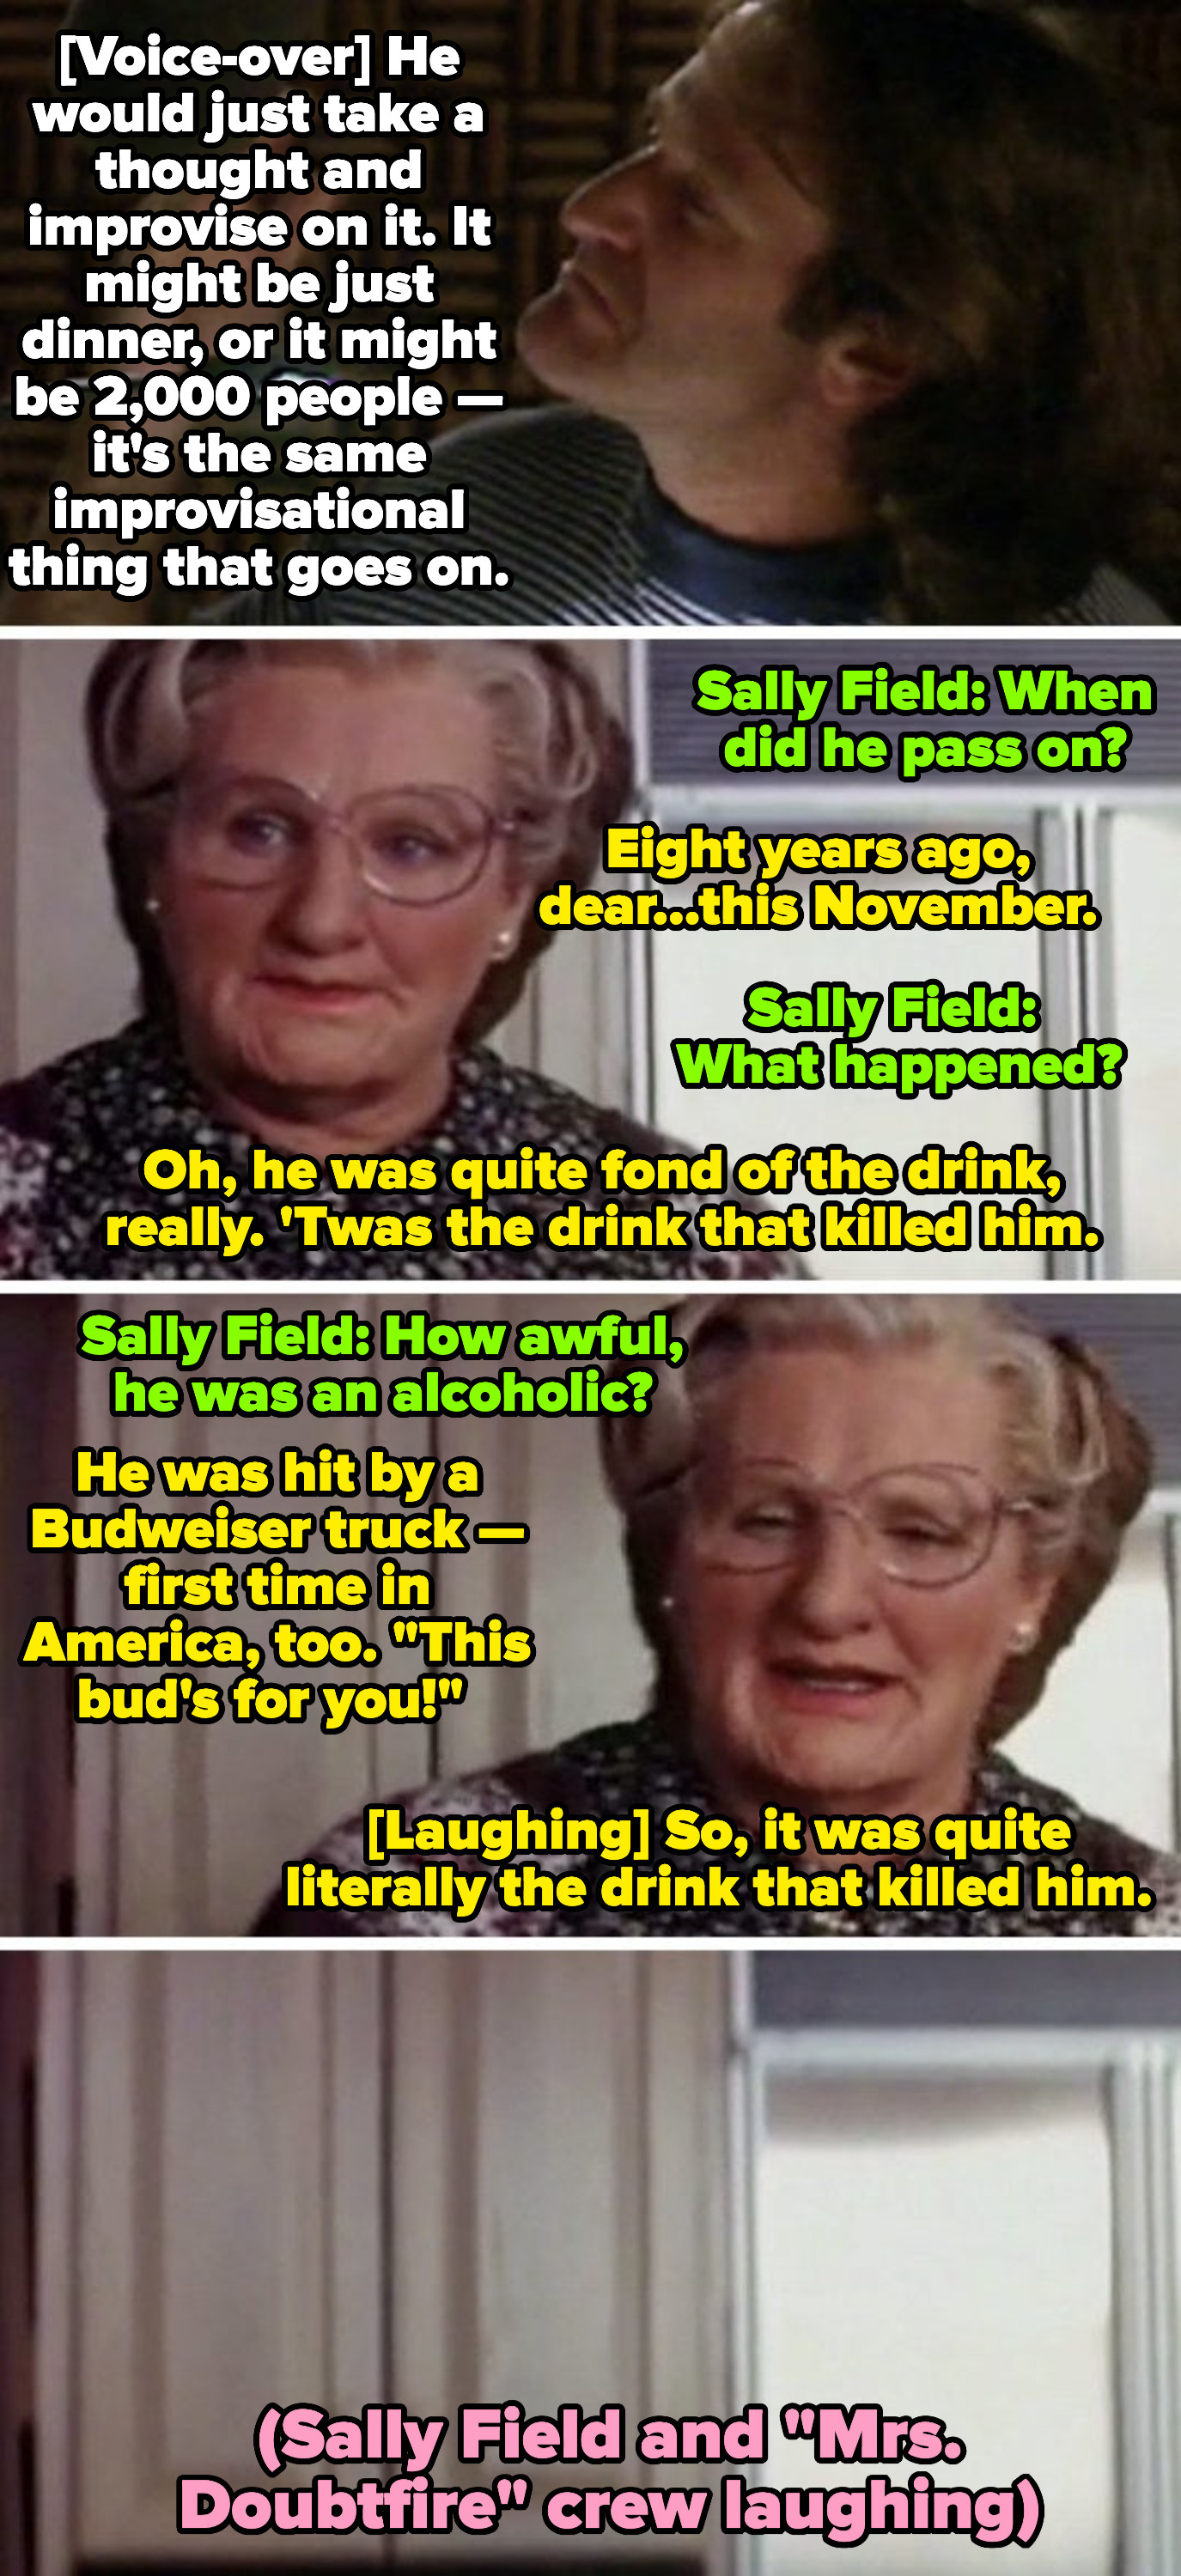 """Robin Williams improvising a memorable scene from """"Mrs. Doubtfire"""" about her husband being killed by a beer truck"""